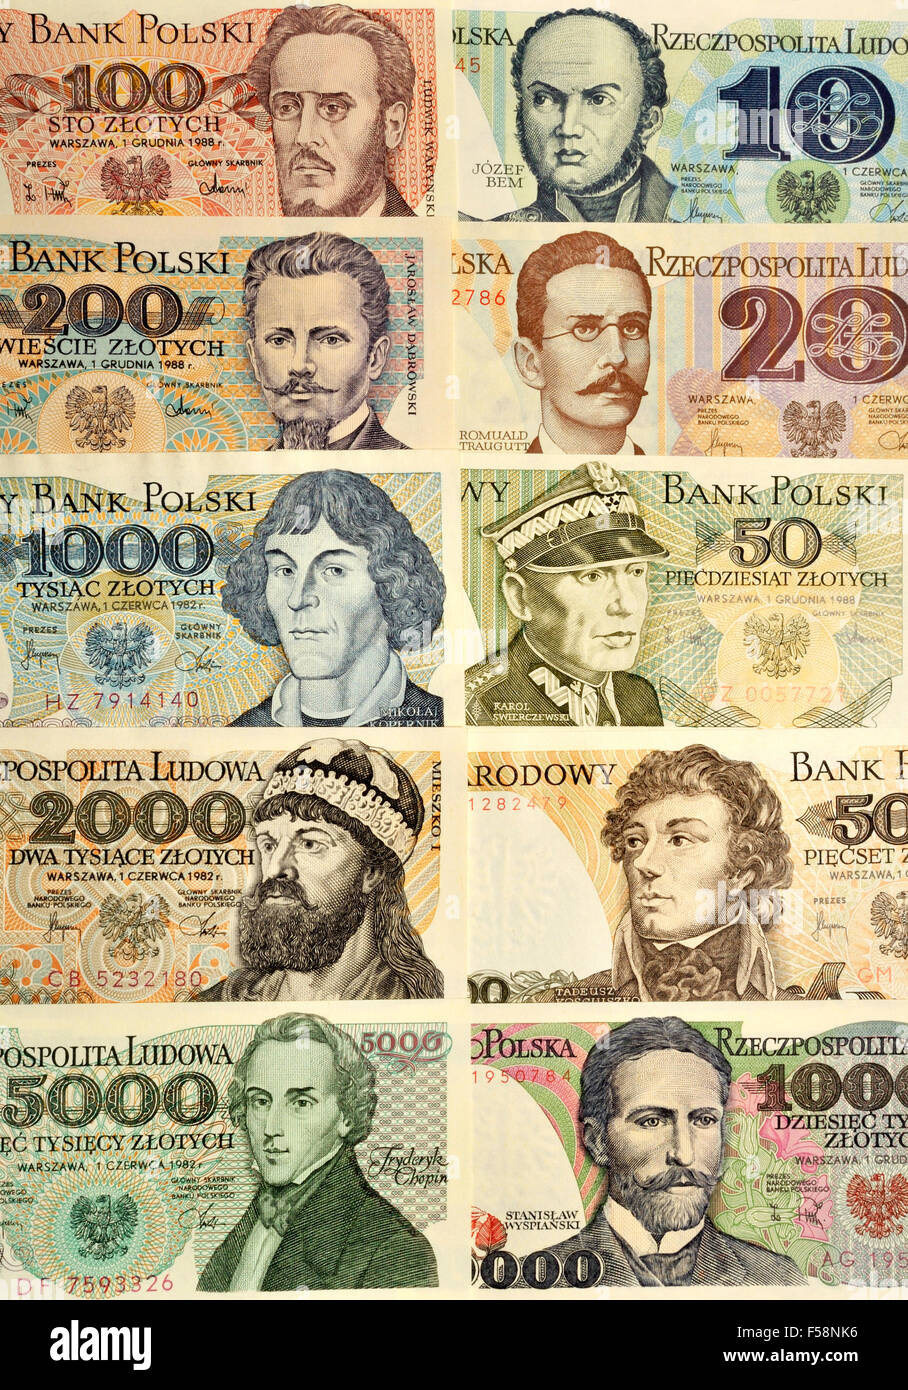 Polish banknotes (pre-1995) showing historical figures. By denomination: Josef Bem (10) Romuald Trugutt... (see Stock Photo